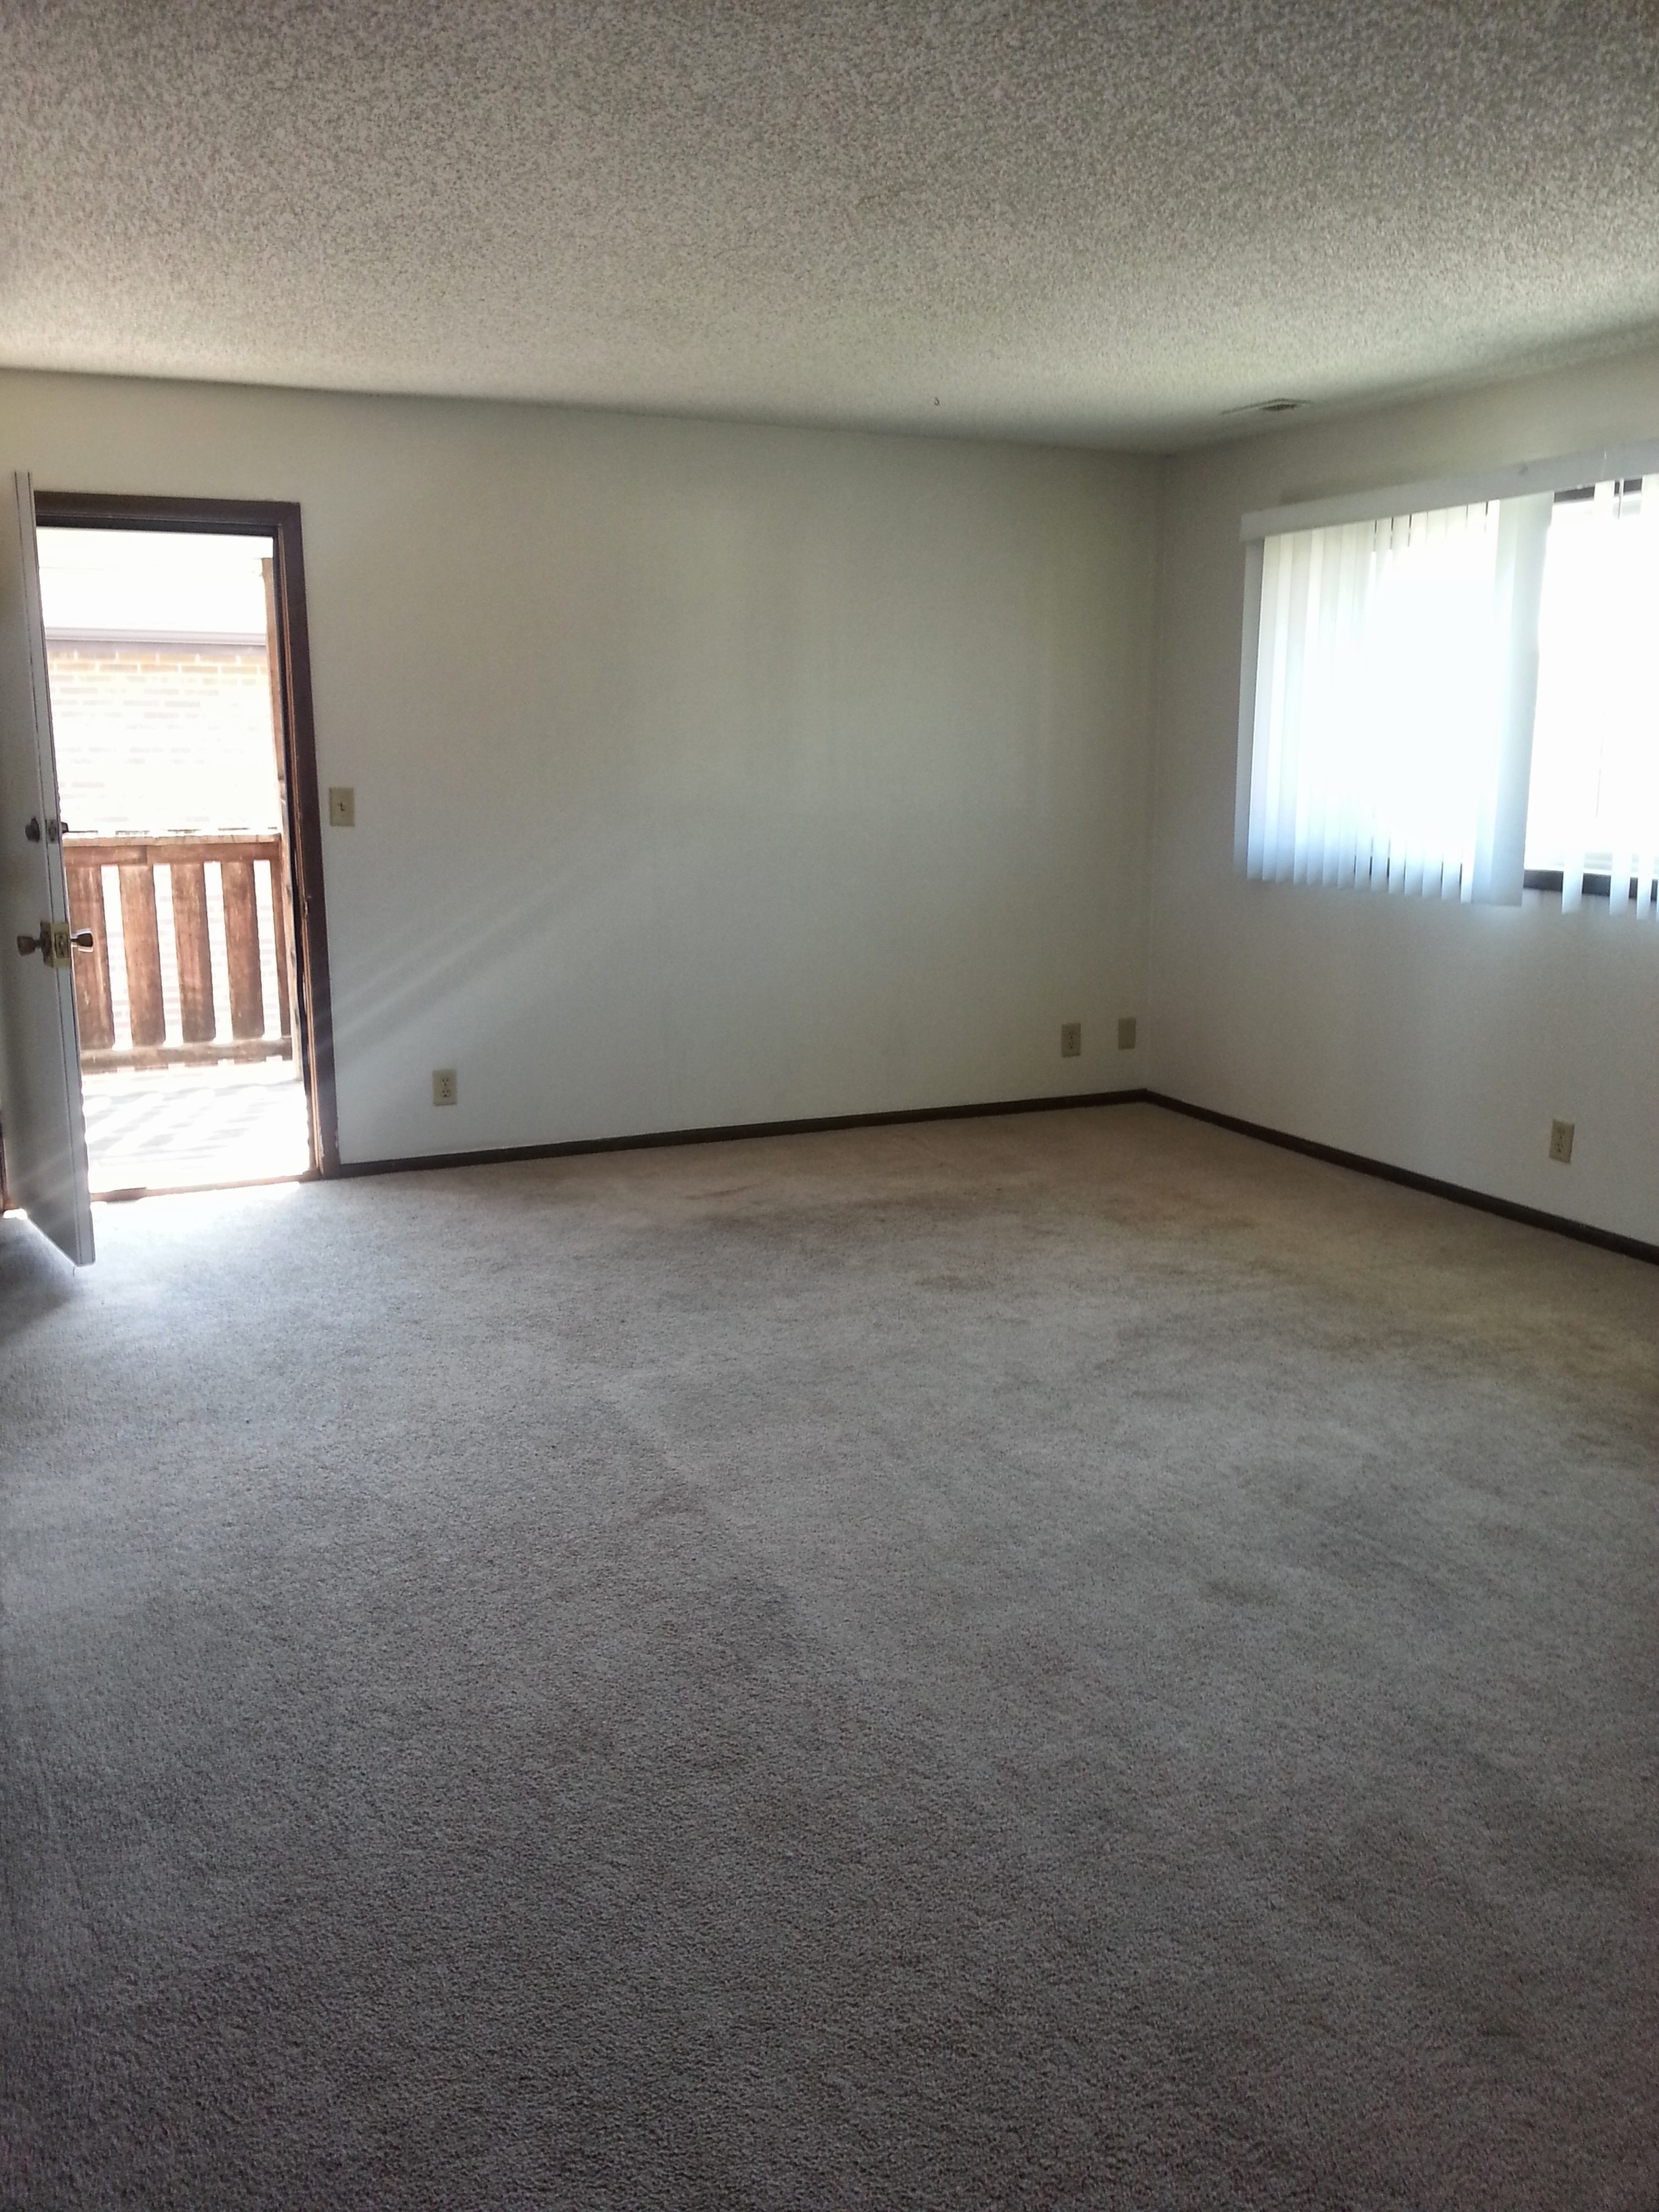 2 Bedroom For Rent In South Lincoln On Site Laundry